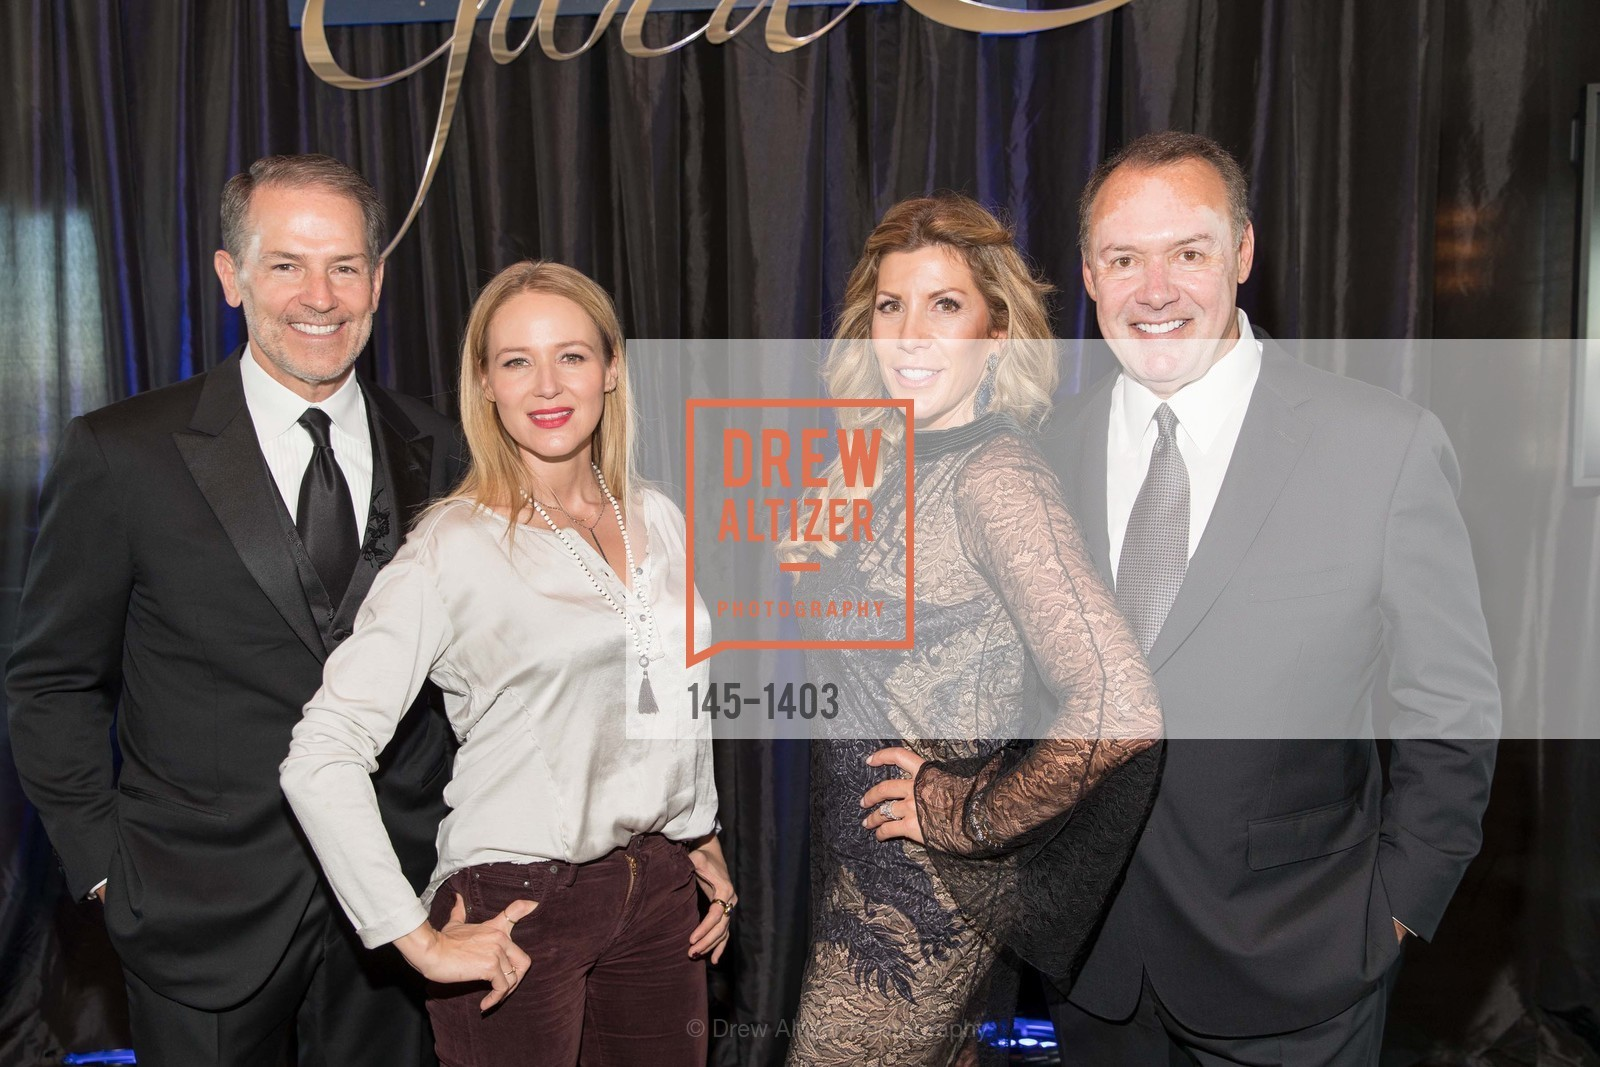 Jim Steele, Jewel, Lori Pryt, David Veneziano, Photo #145-1403